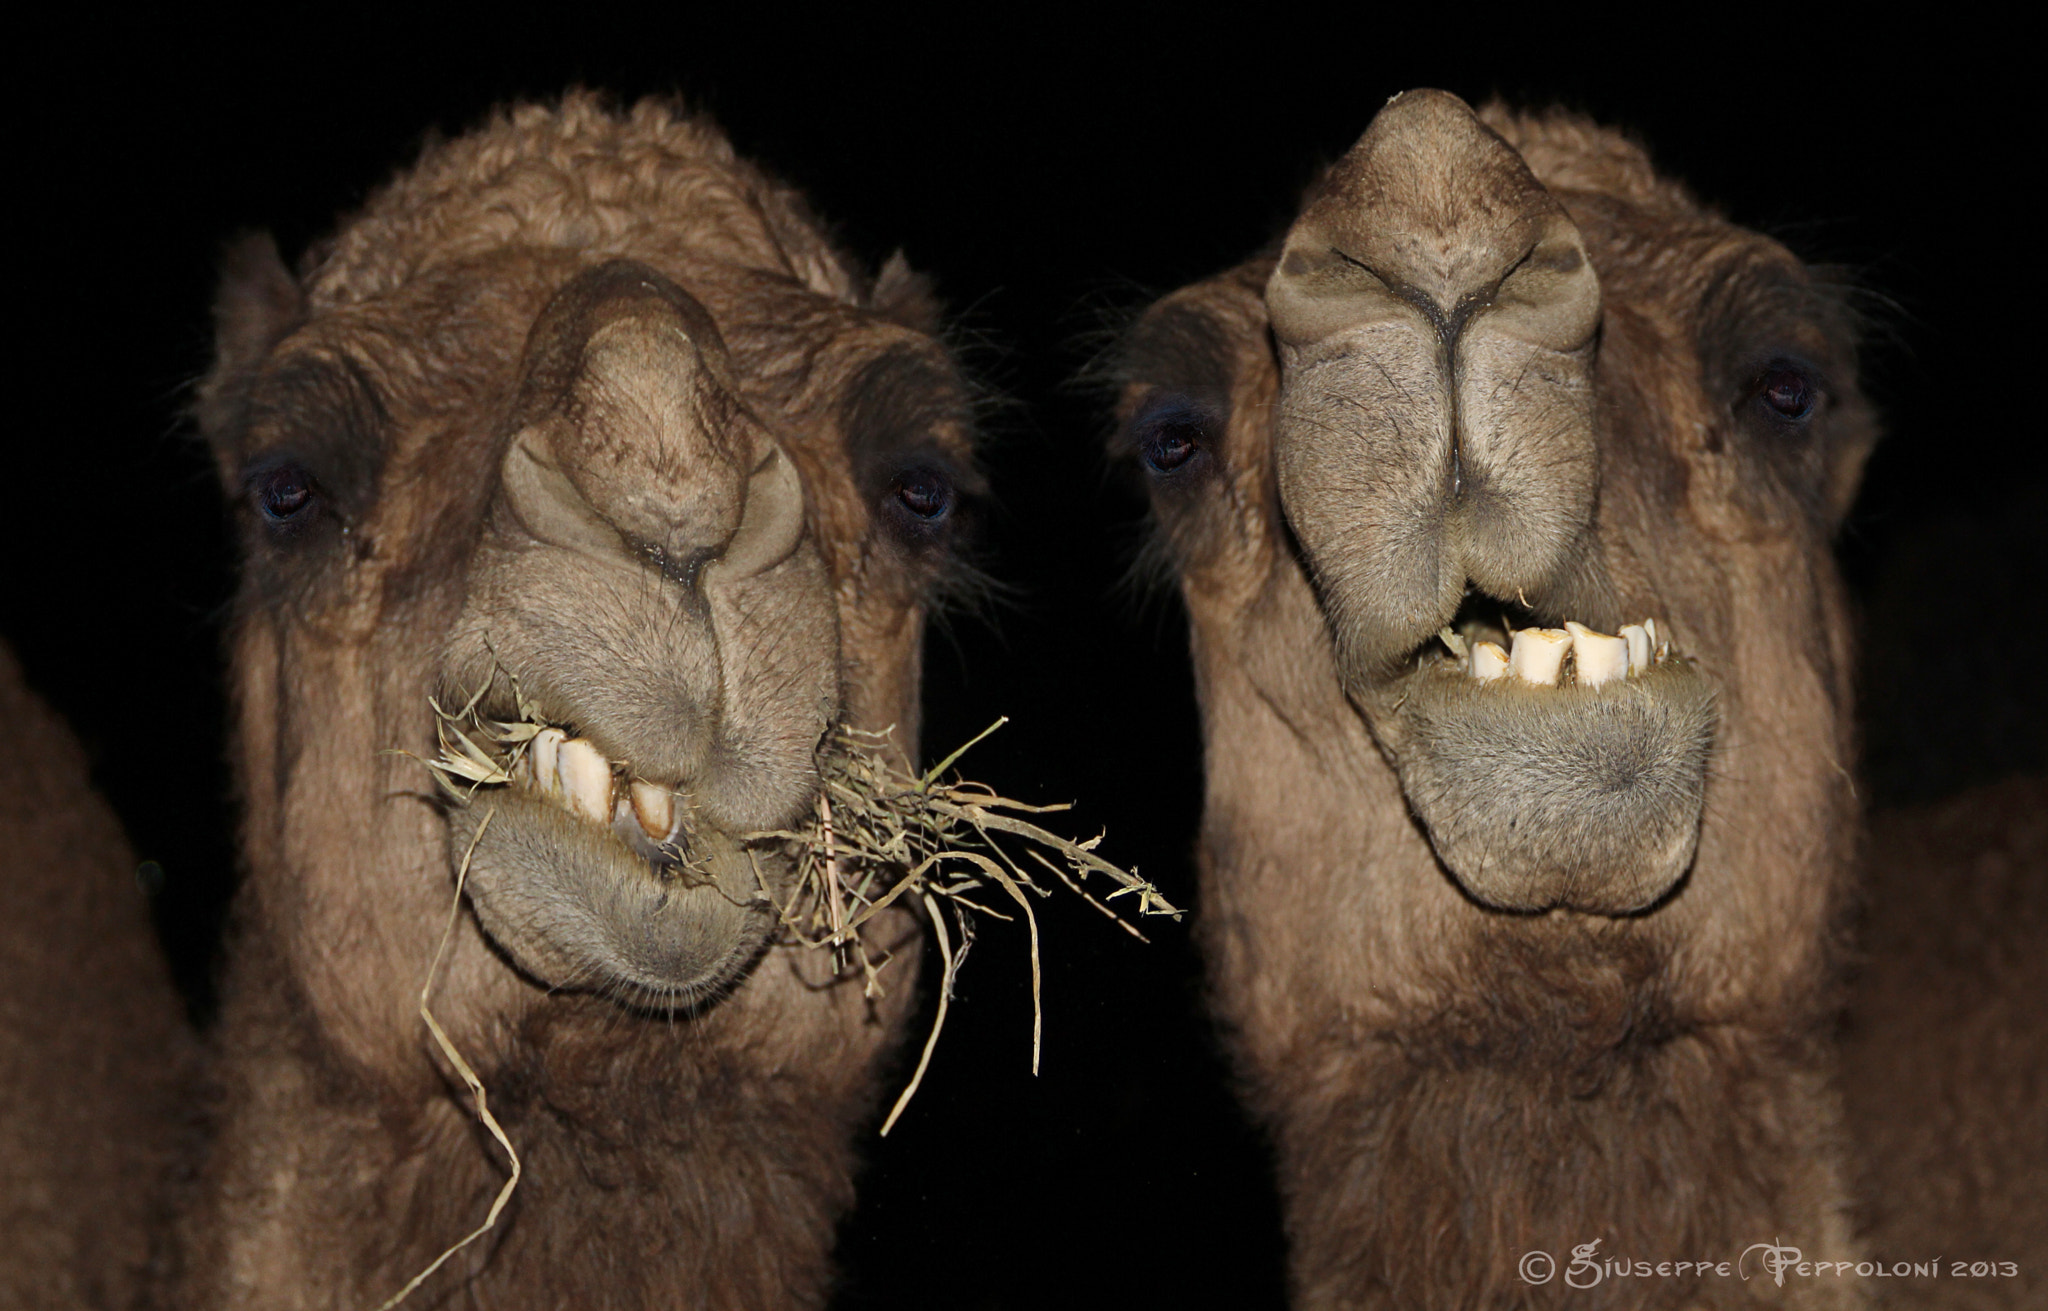 Photograph The camels by Giuseppe  Peppoloni on 500px